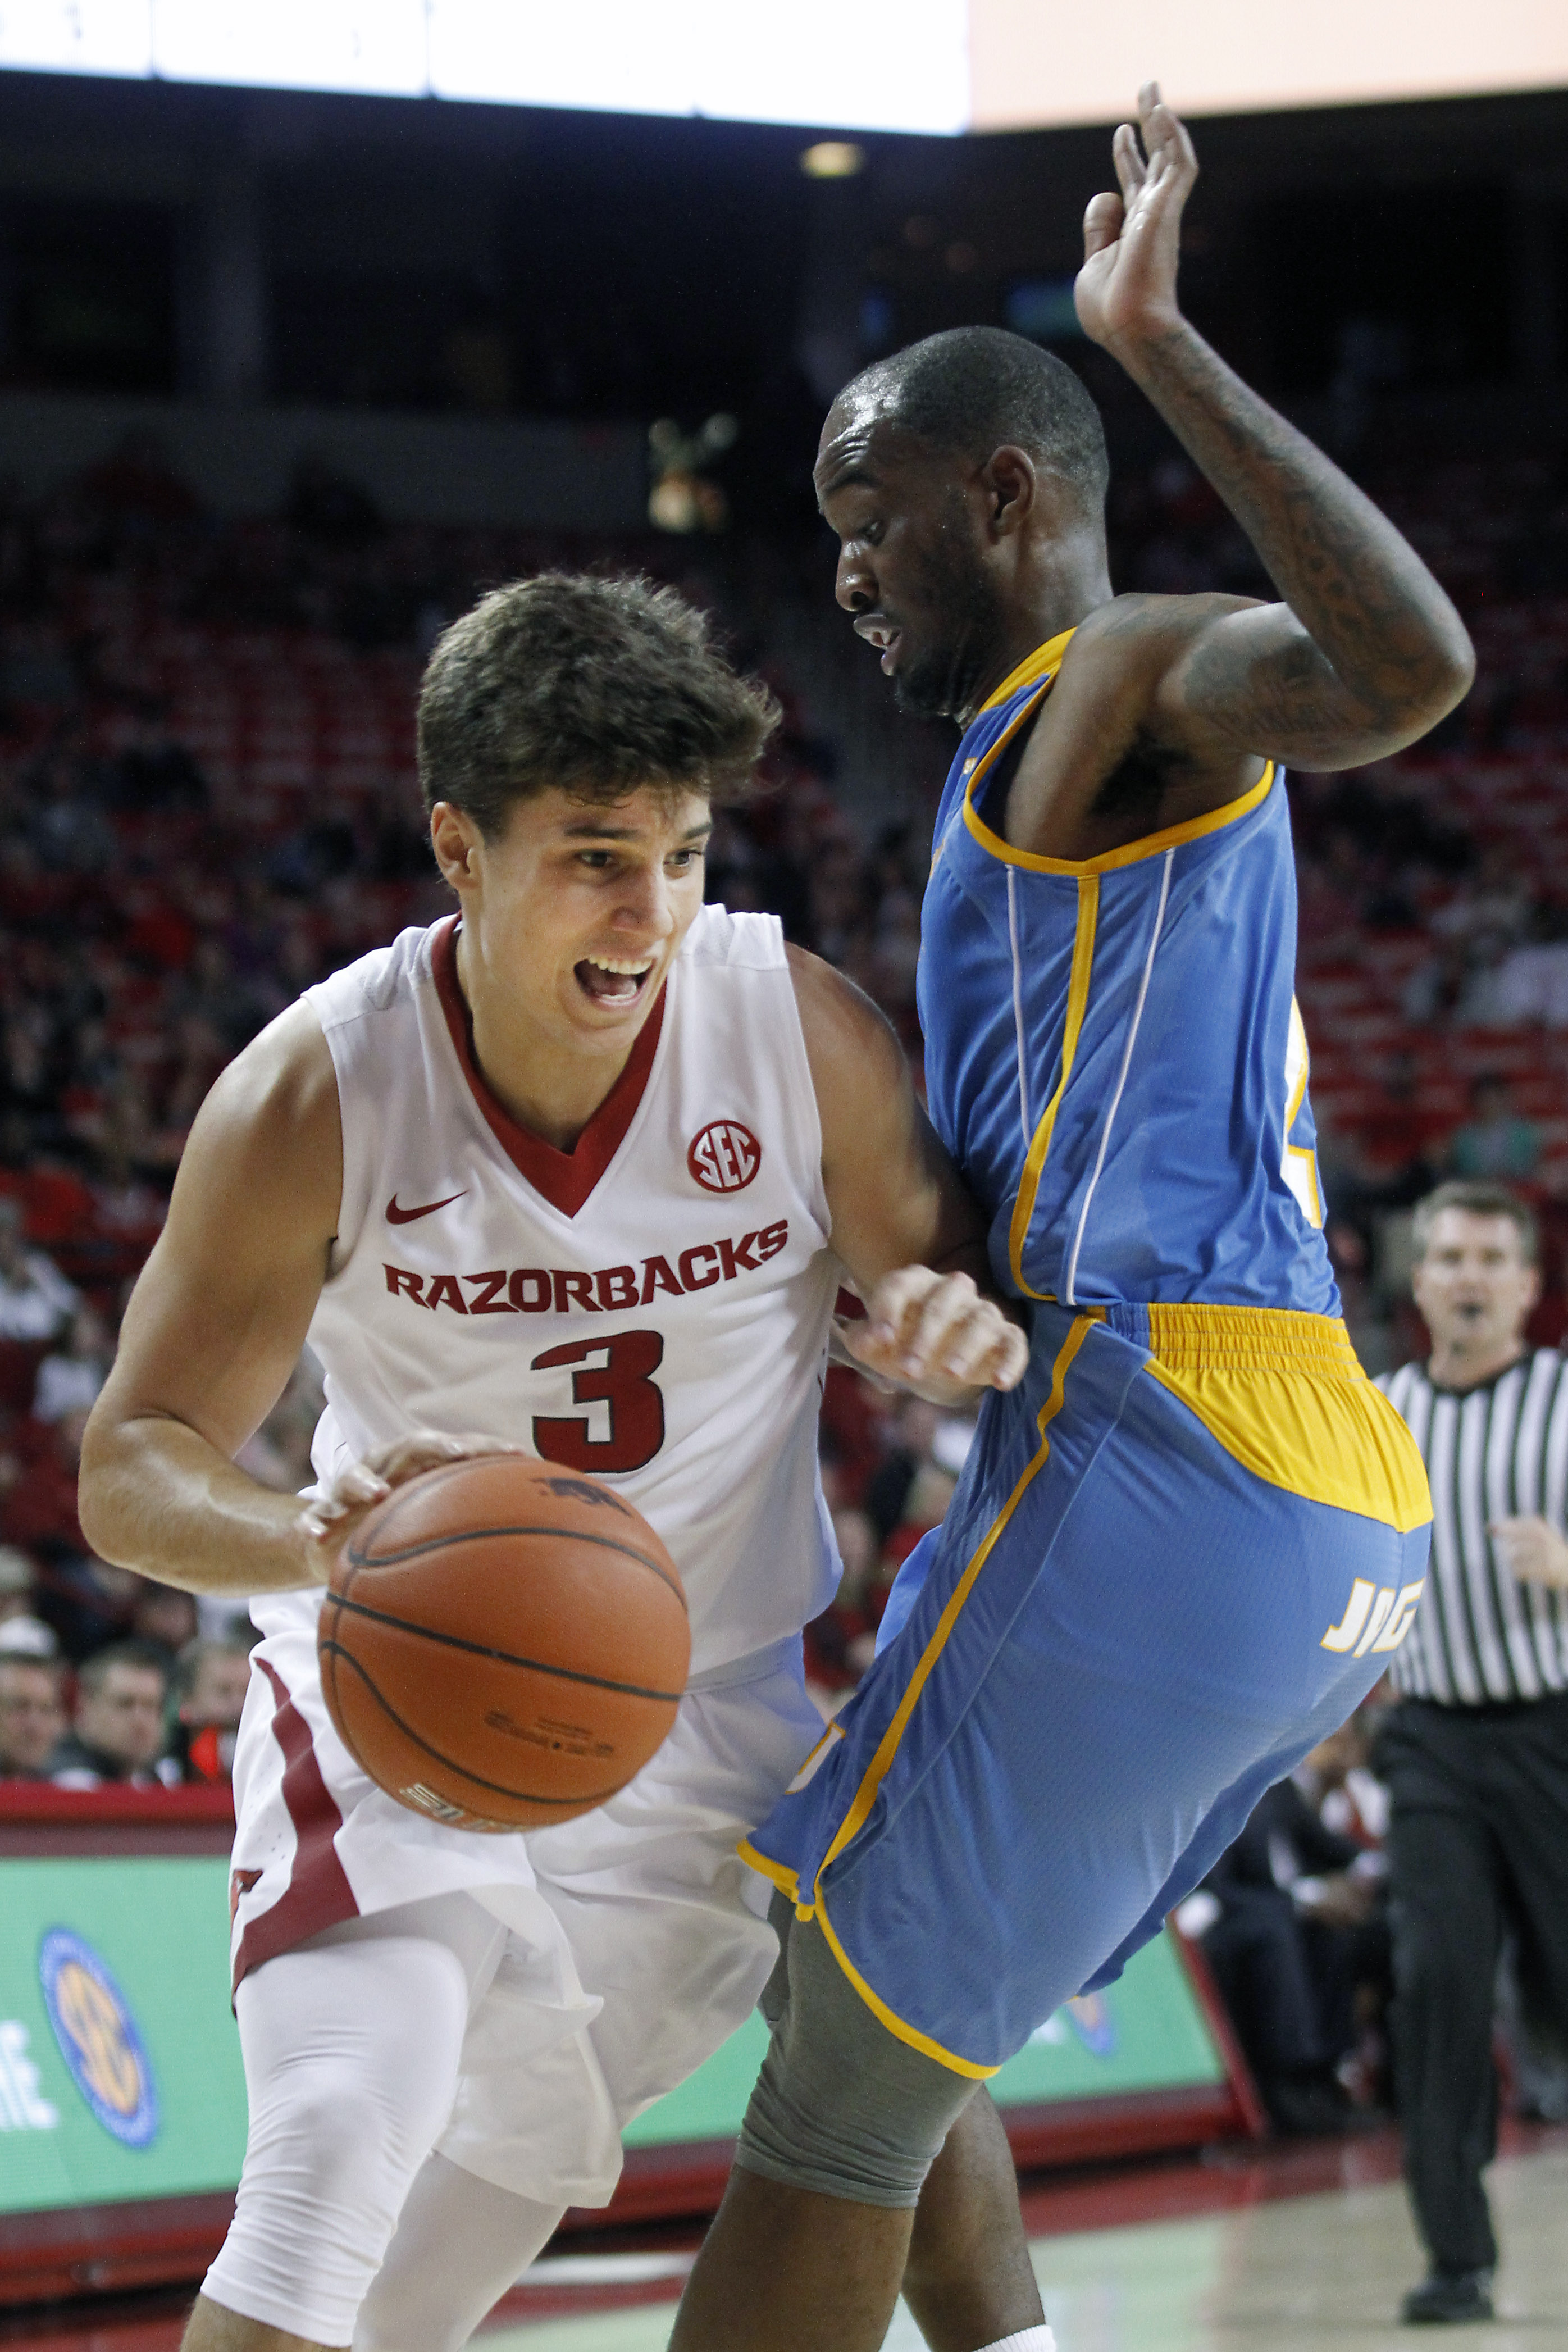 Arkansas' Dusty Hannahs (3) moves past Southern University's Adrian Rodgers during the first half of an NCAA college basketball game Friday, Nov. 13, 2015, in Fayetteville, Ark. (AP Photo/Samantha Baker)